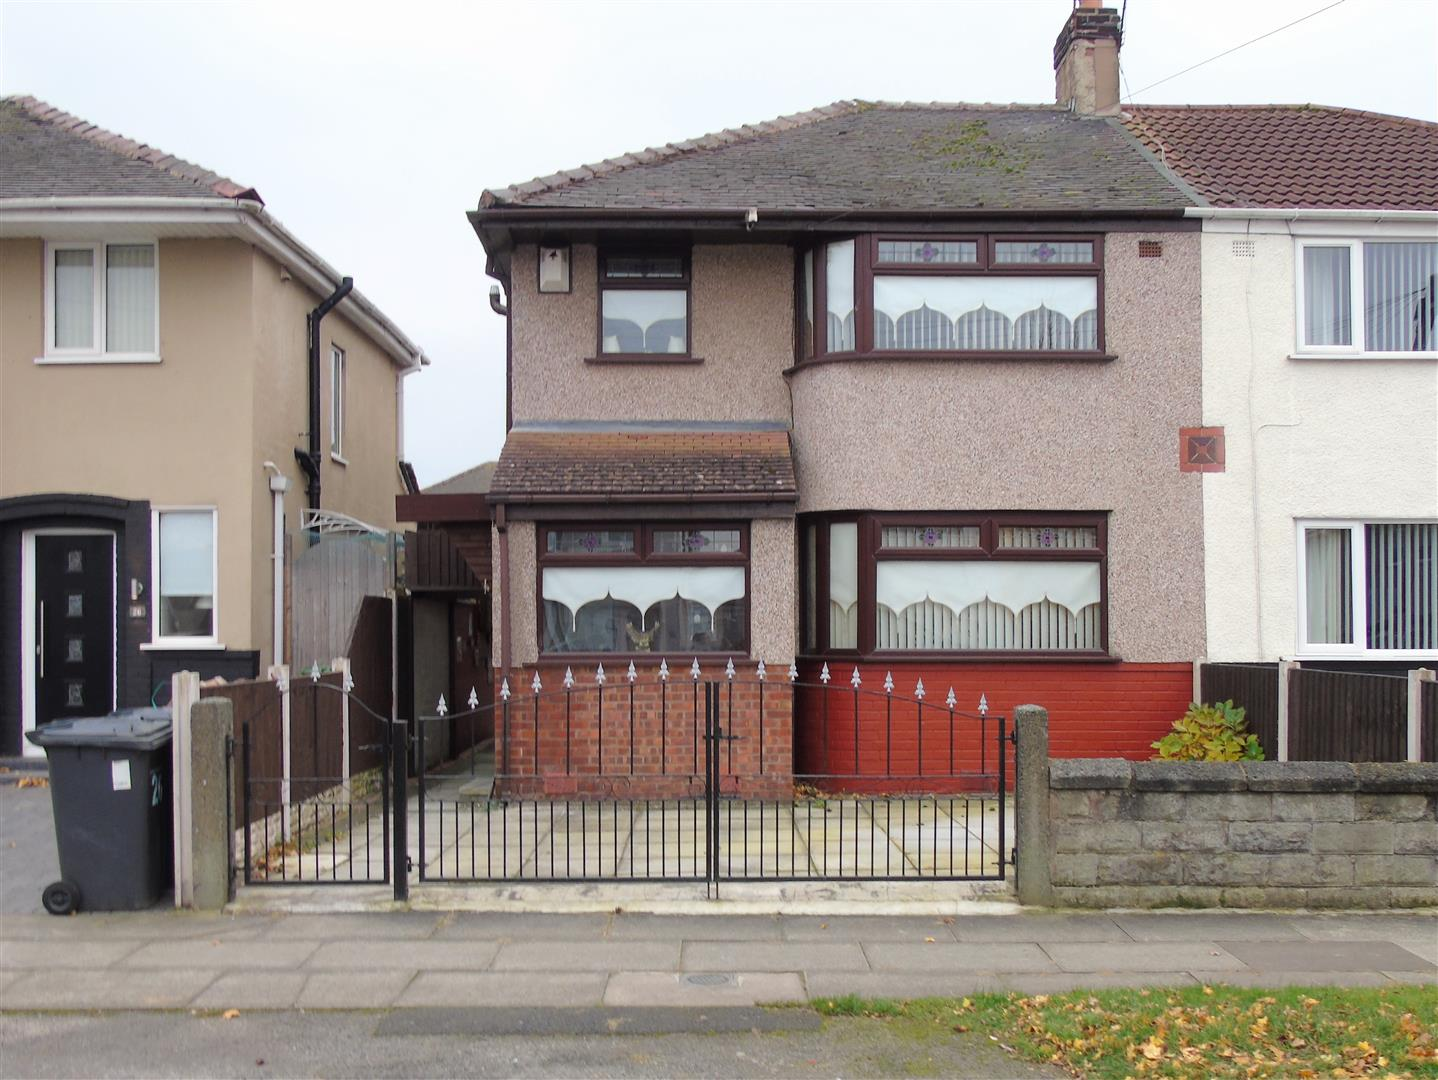 3 Bedrooms, House - Semi-Detached, Keble Drive, Liverpool